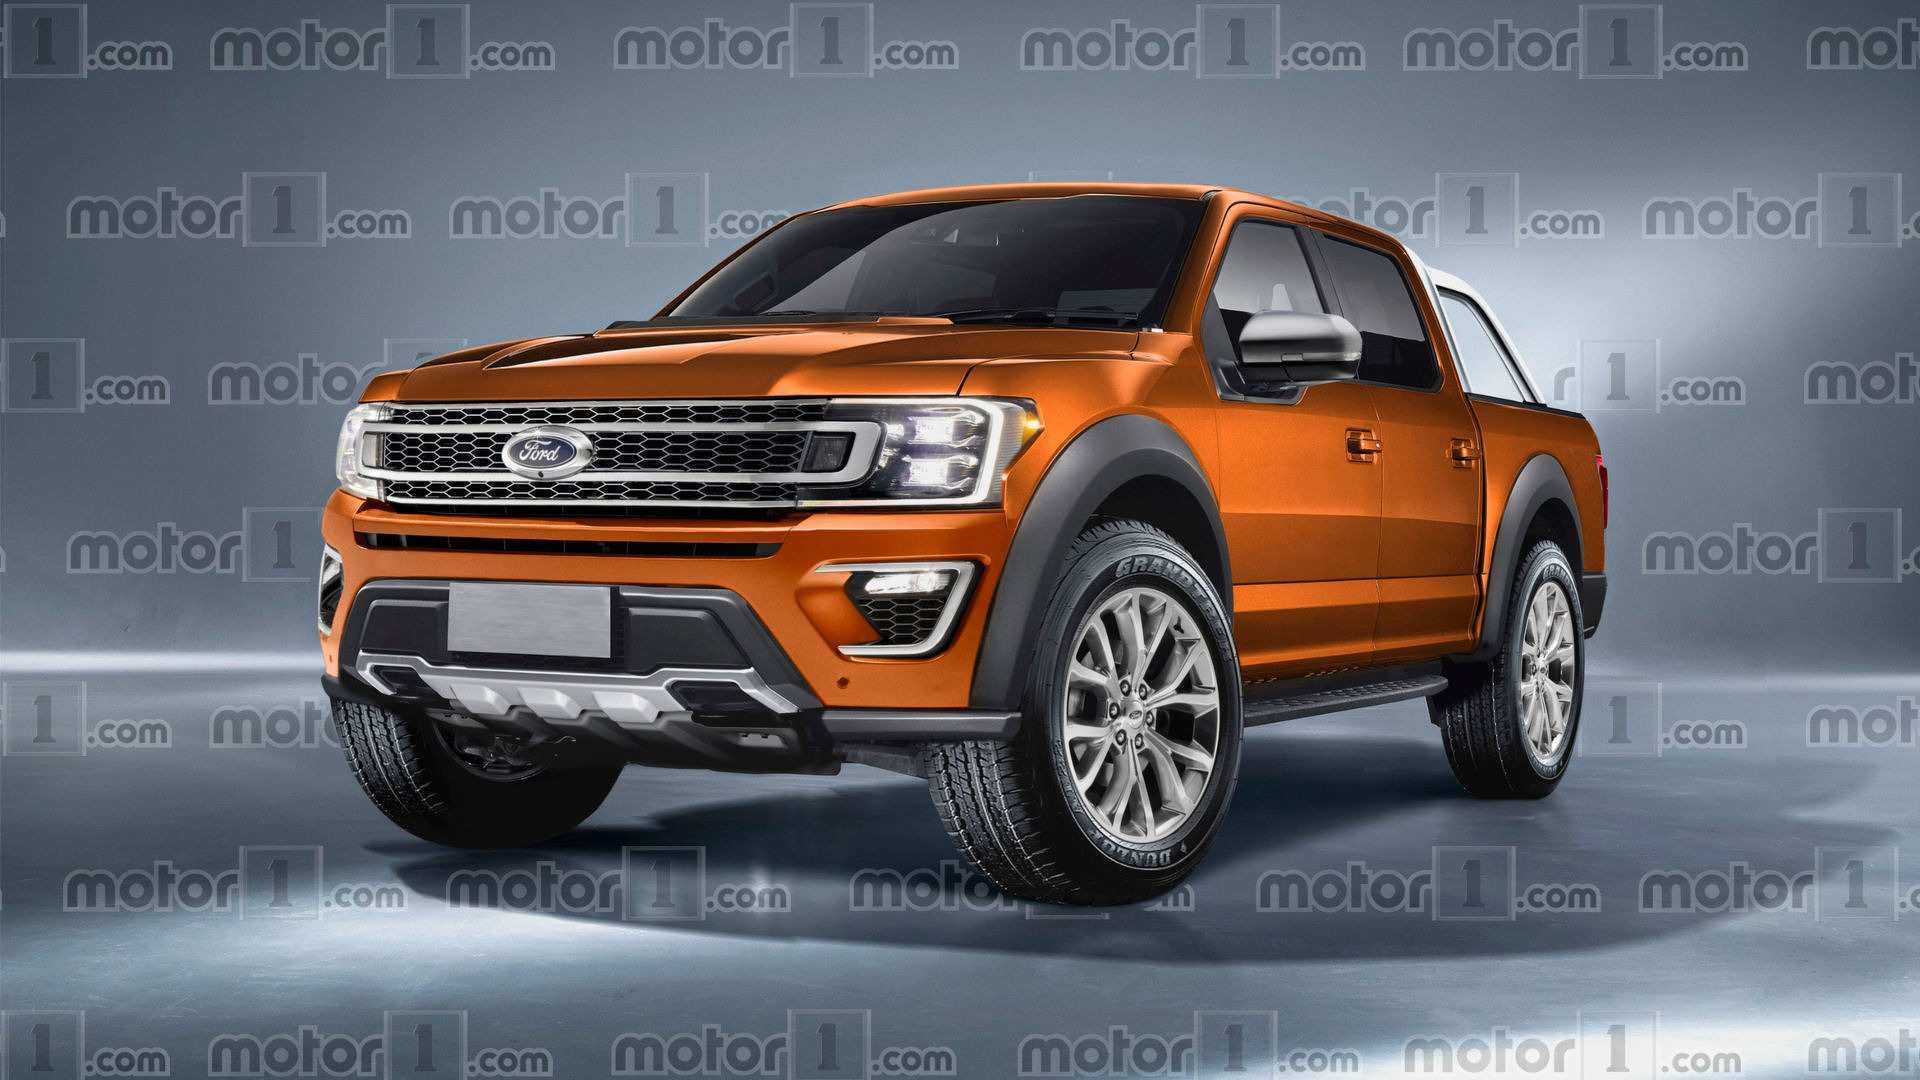 53 A Ford Ranger 2020 Model Ratings